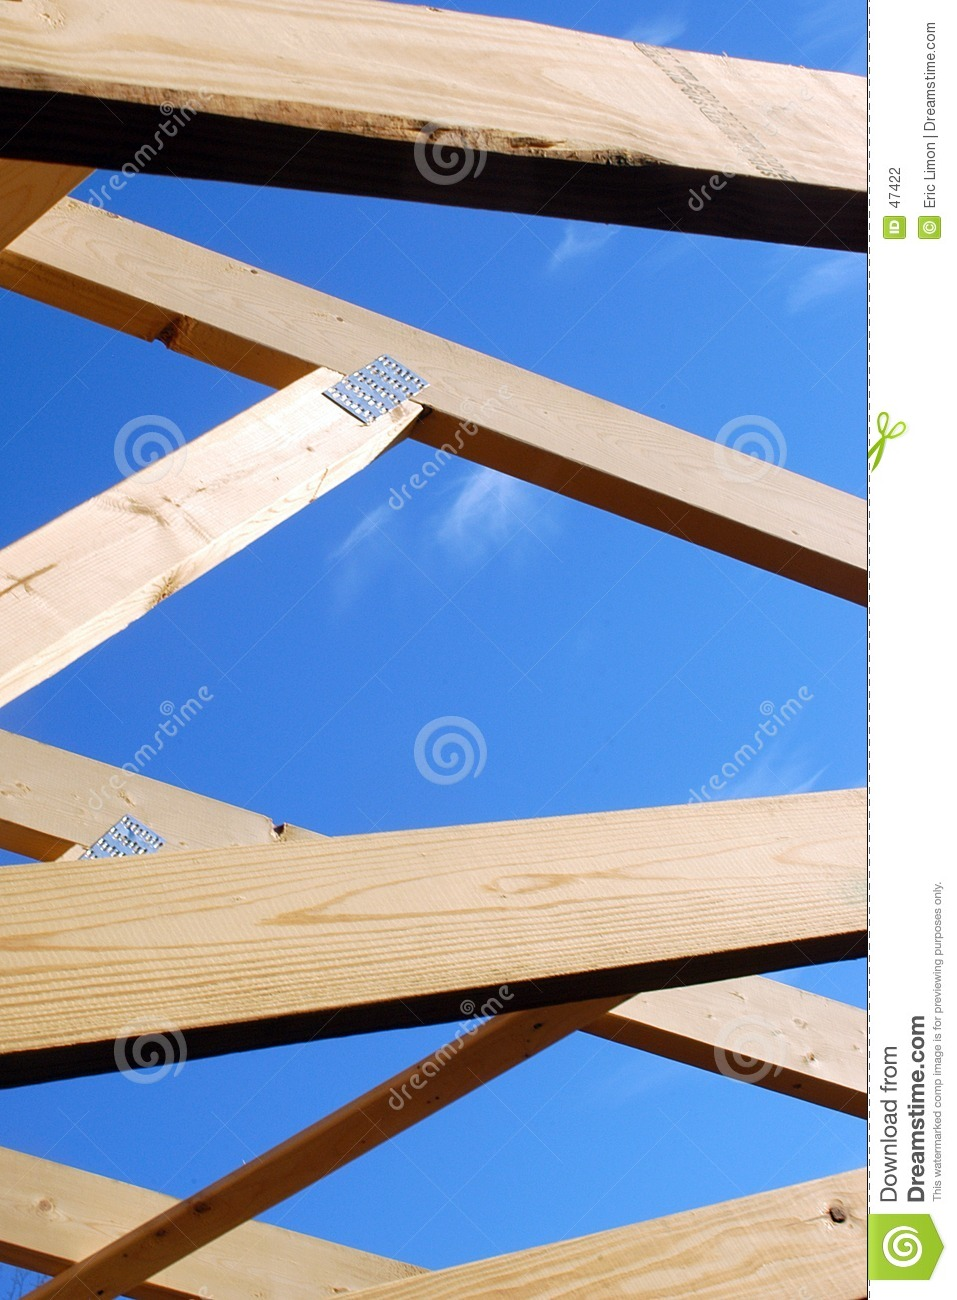 Construction of a house